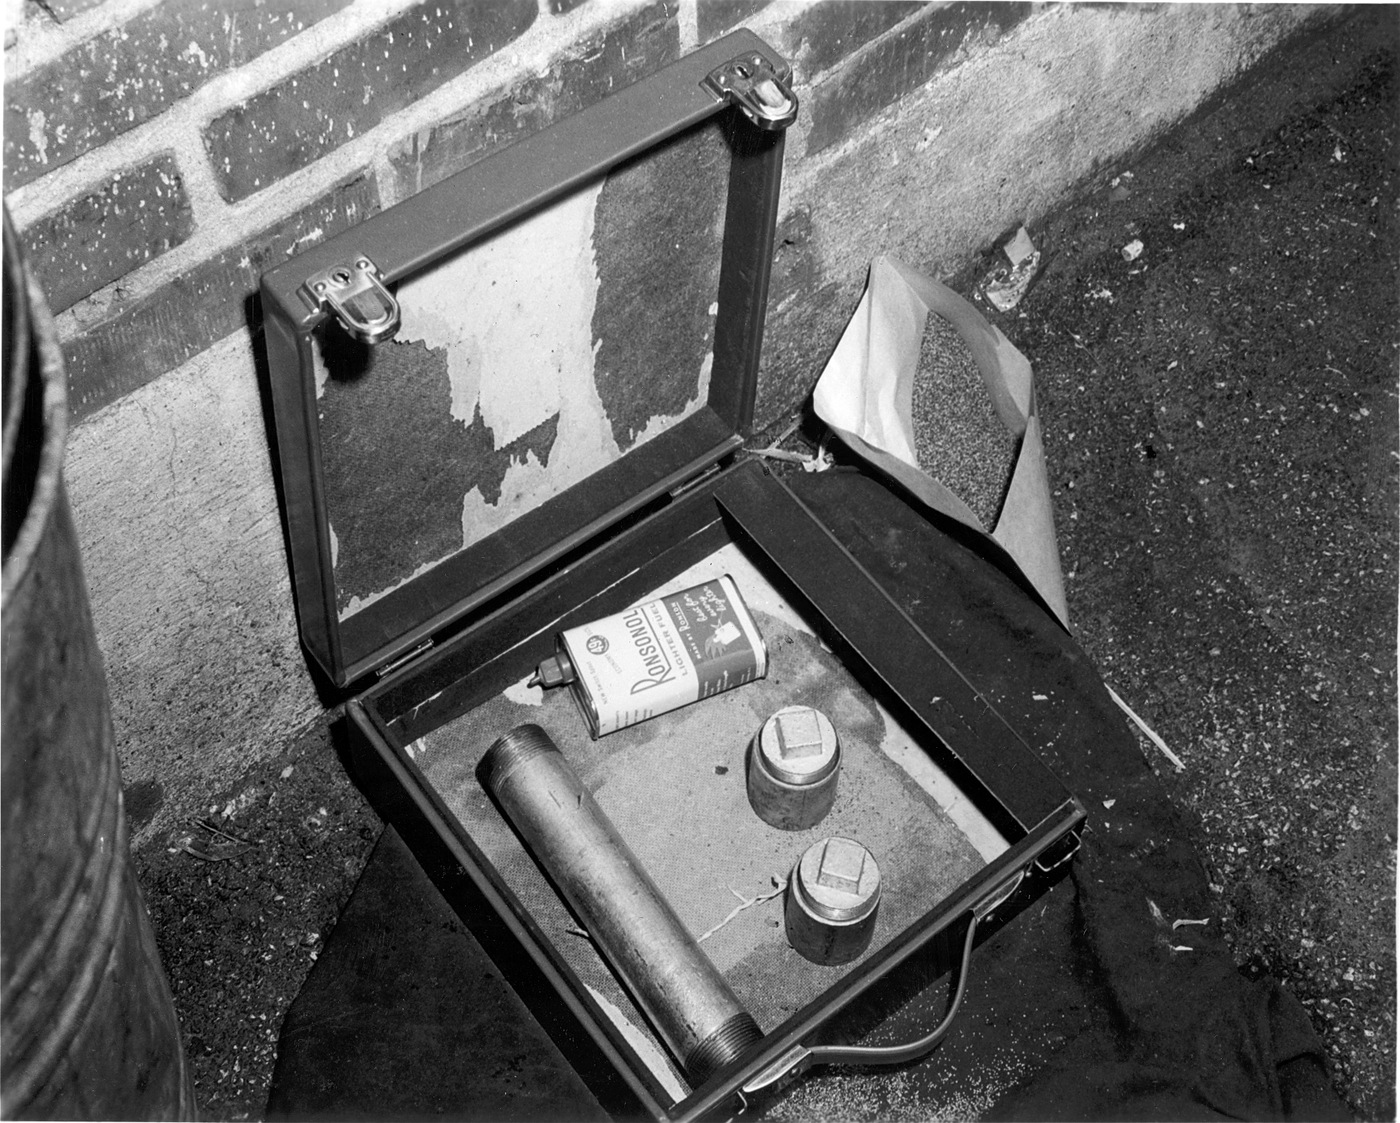 Undetonated homemade bomb made by Albert Nussbaum in 1961 to distract law enforcement in Washington, D.C., while he and Bobby Wilcoxson robbed a bank and that revealed the fingerprints of Nussbaum.